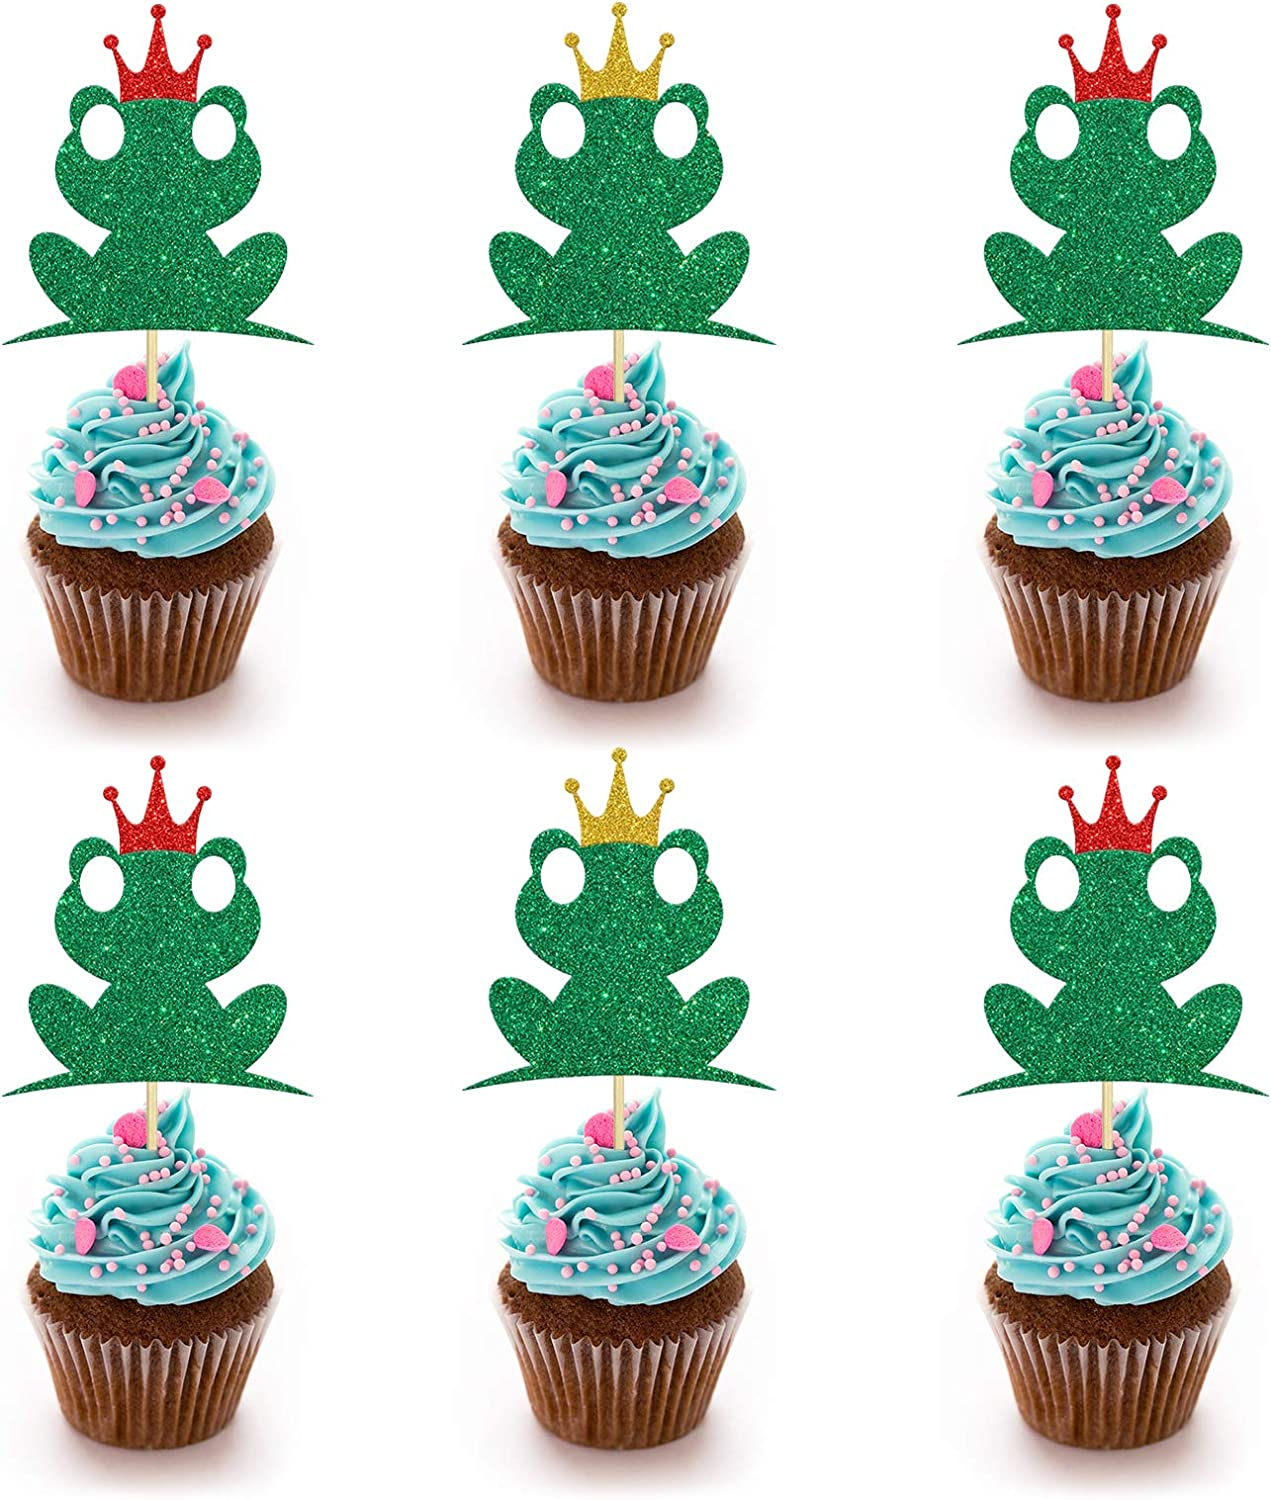 24PCS Glitter Frog Cupcake Toppers, Princess Frog Food Picks, Gender Reveal/Kids Birthday Party Decoration Supplies